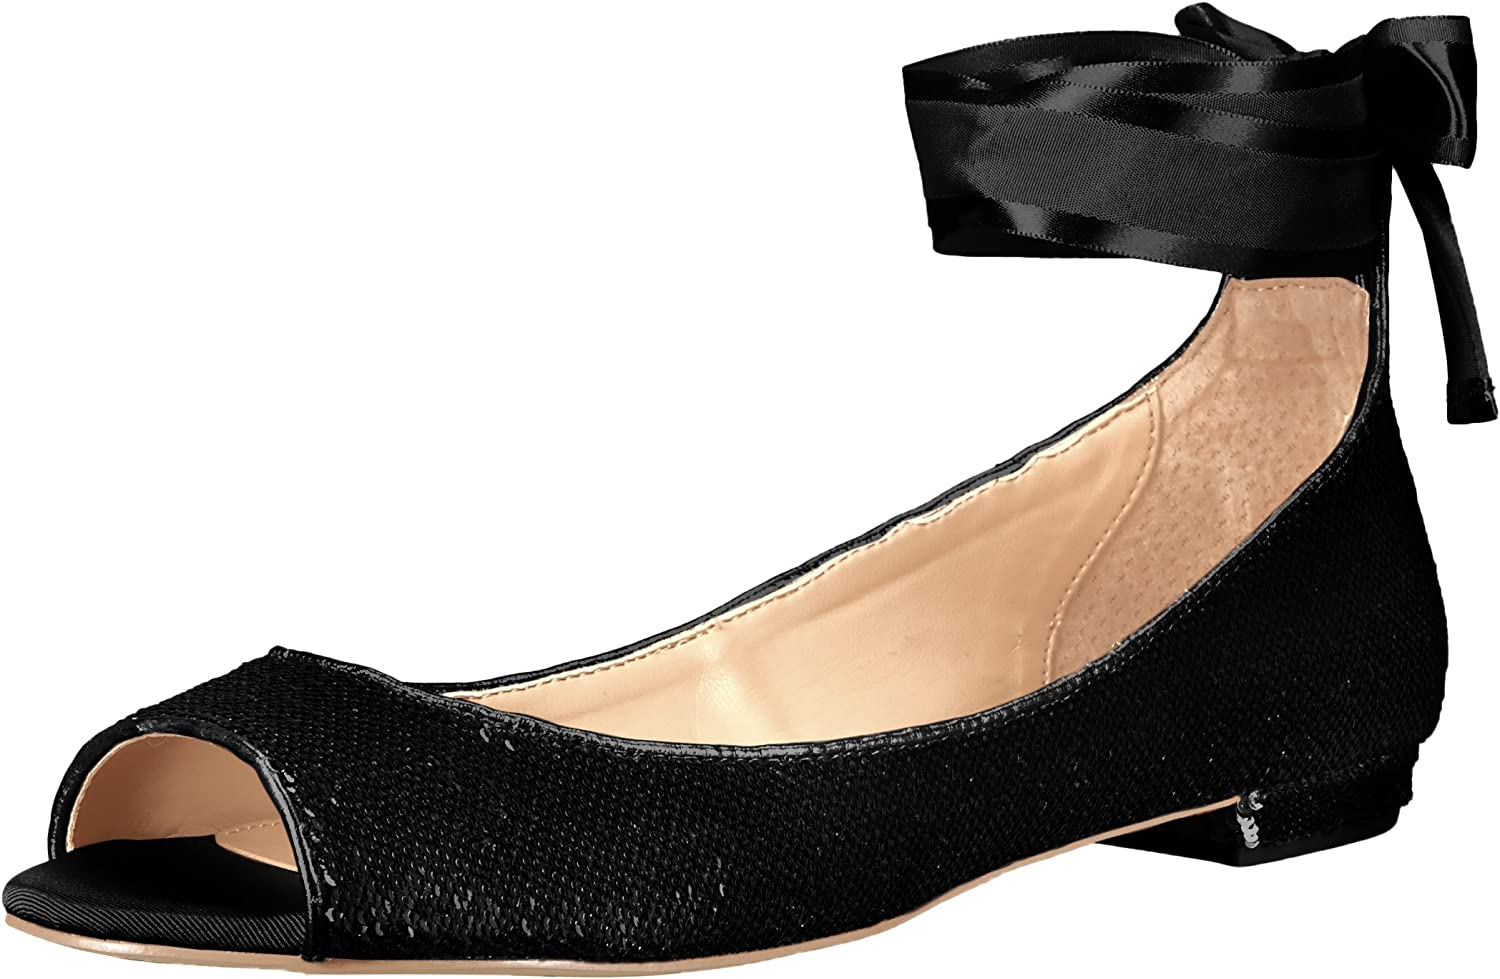 Badgley Mischka Jewel Women's Lorde Ballet